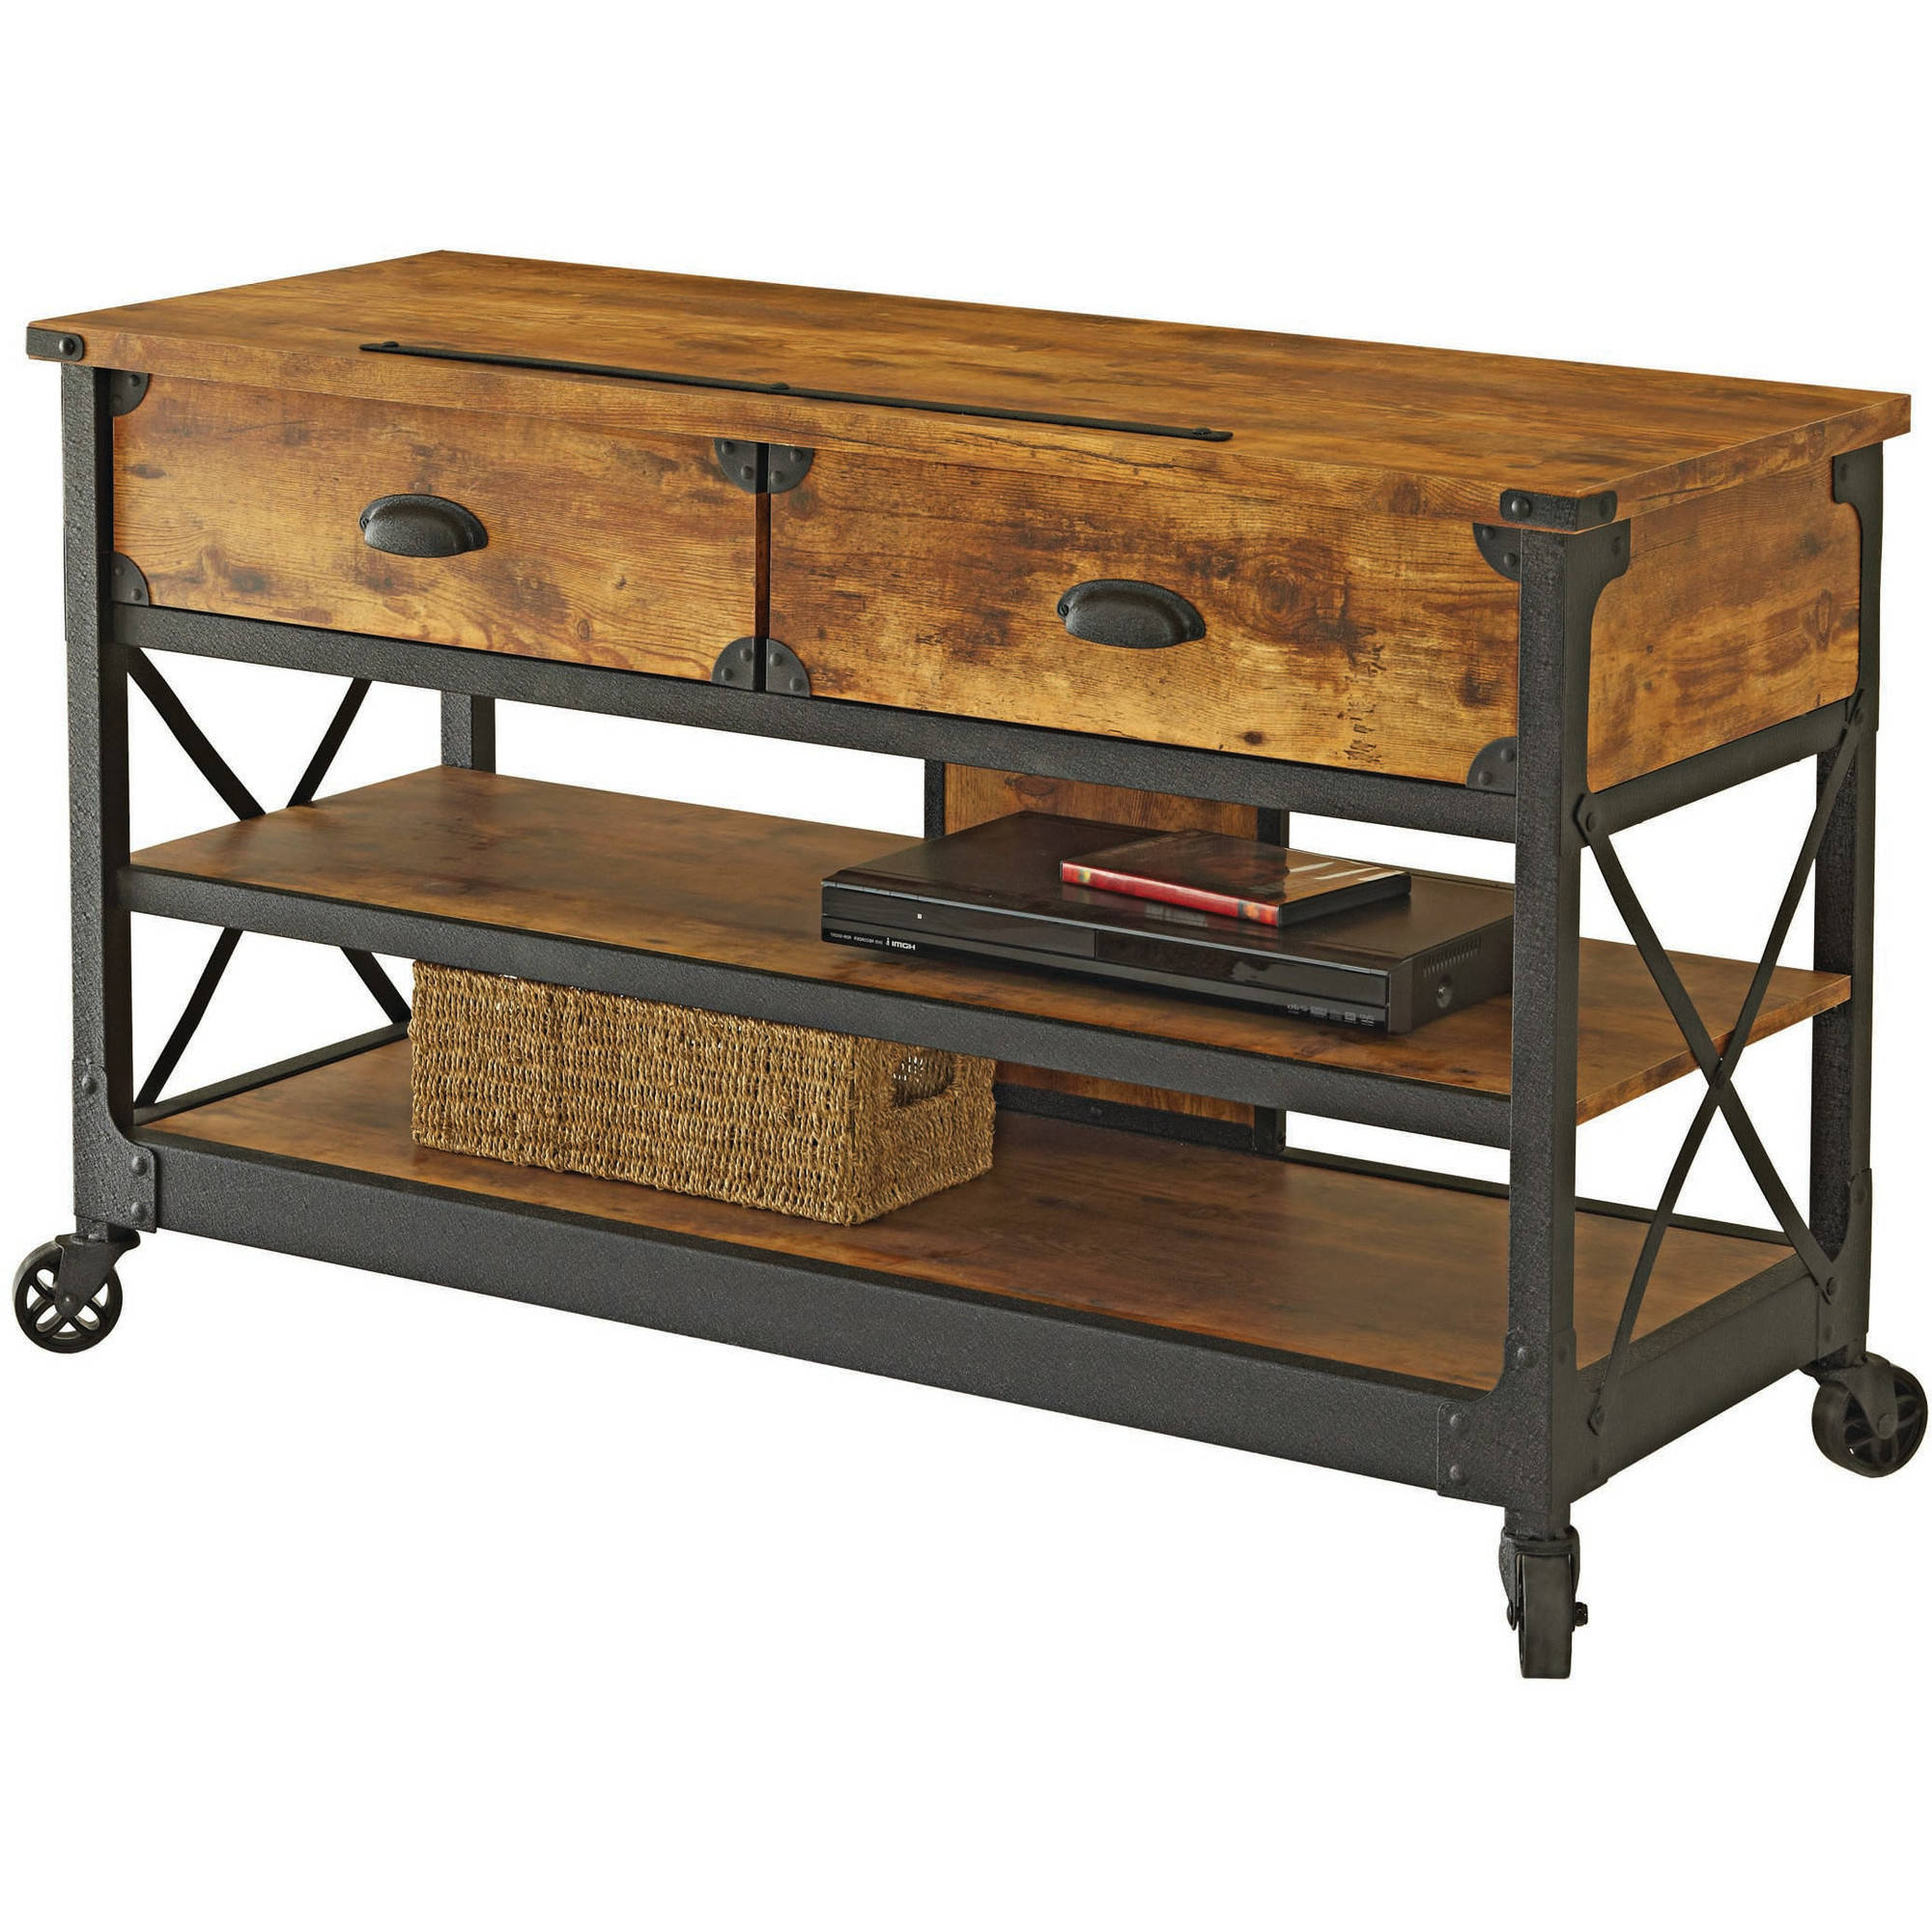 Better Homes & Gardens Rustic Country Tv Stand For Tvs Up To 52 Inside Most Current Rustic Tv Stands (View 5 of 20)